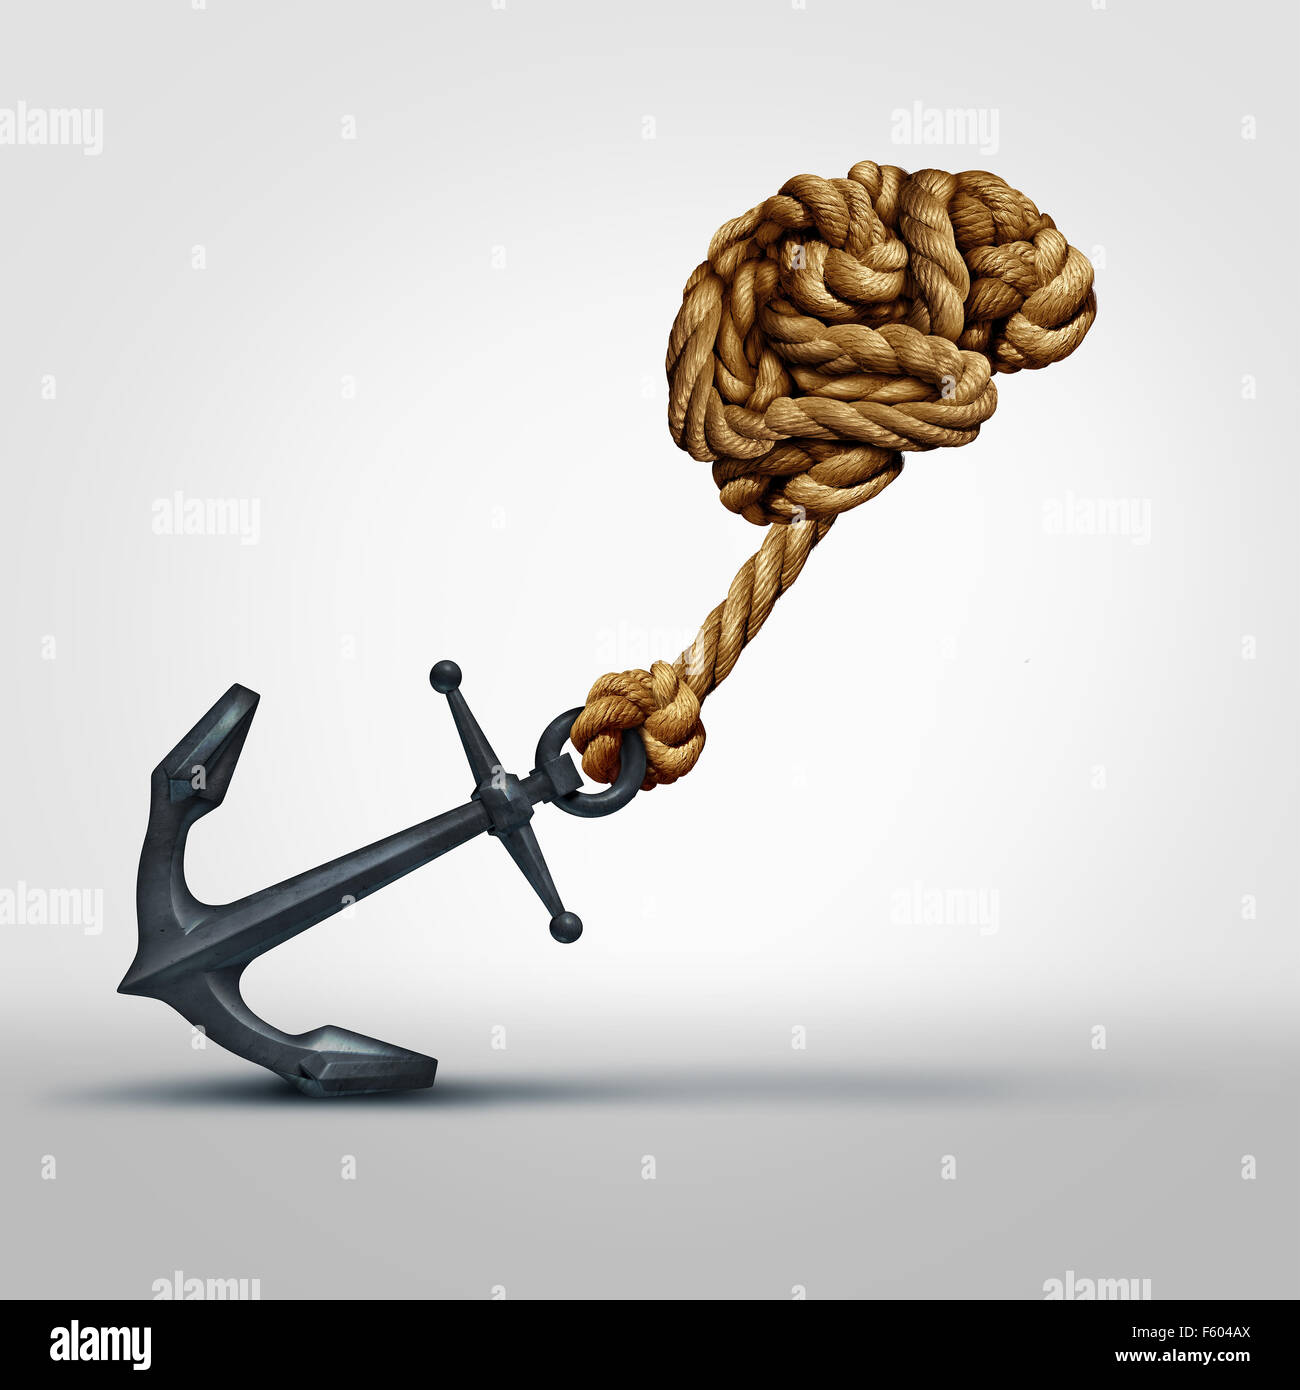 Brain strength concept as a group of ropes shaped as human thinking organ pulling a heavy anchor as a symbol for - Stock Image